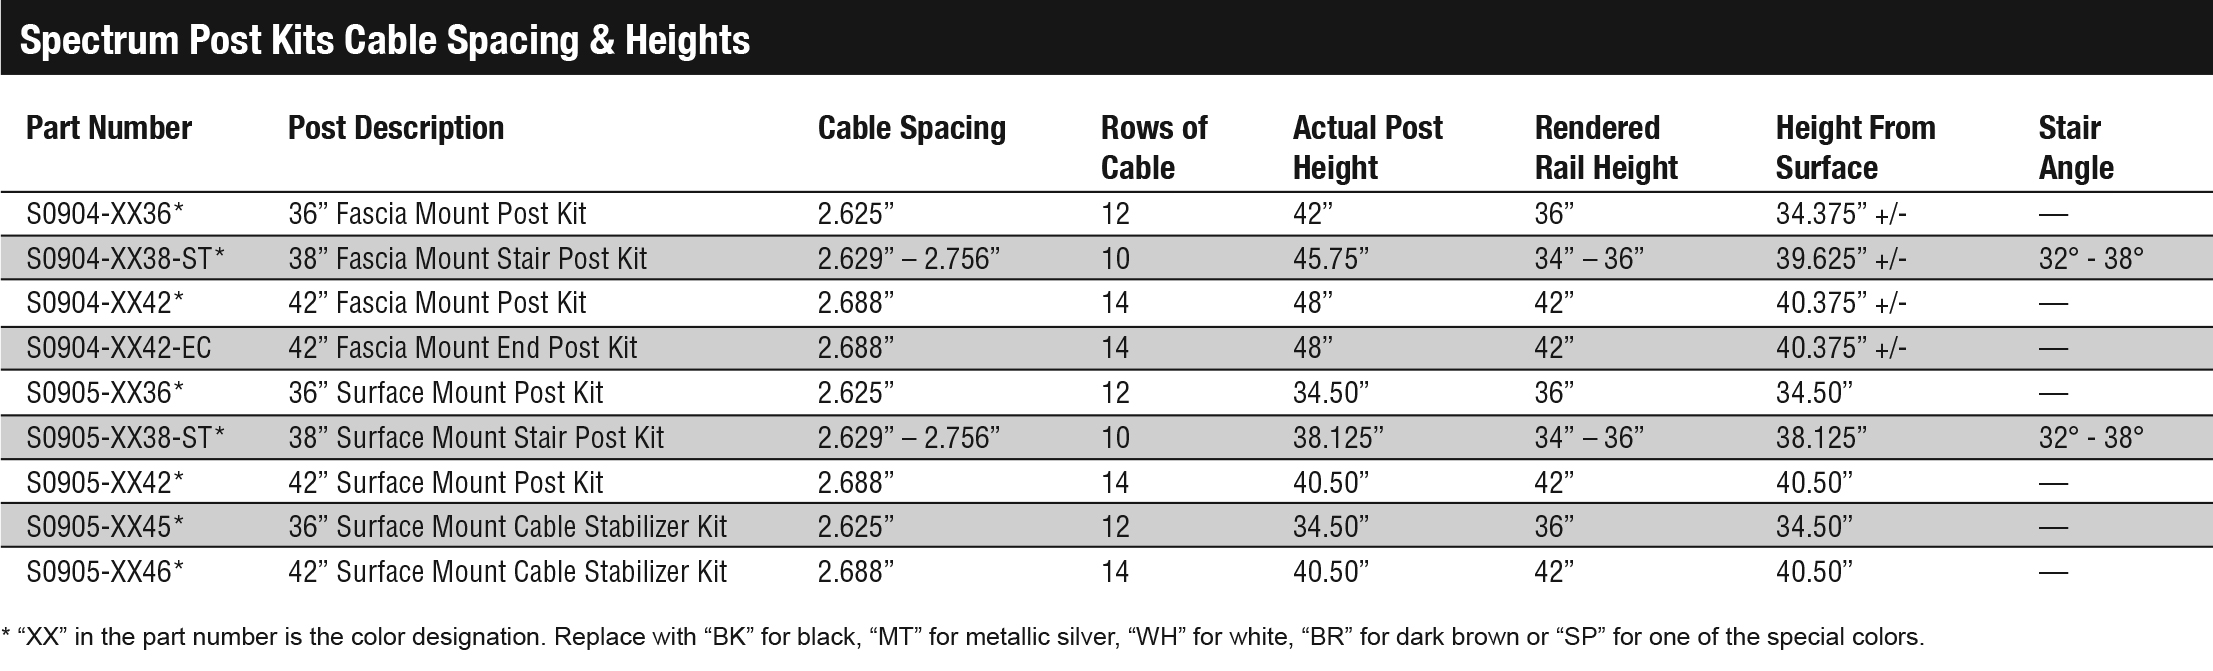 Spectrum-Post-Kits-Cable-Spacing-Heights-1